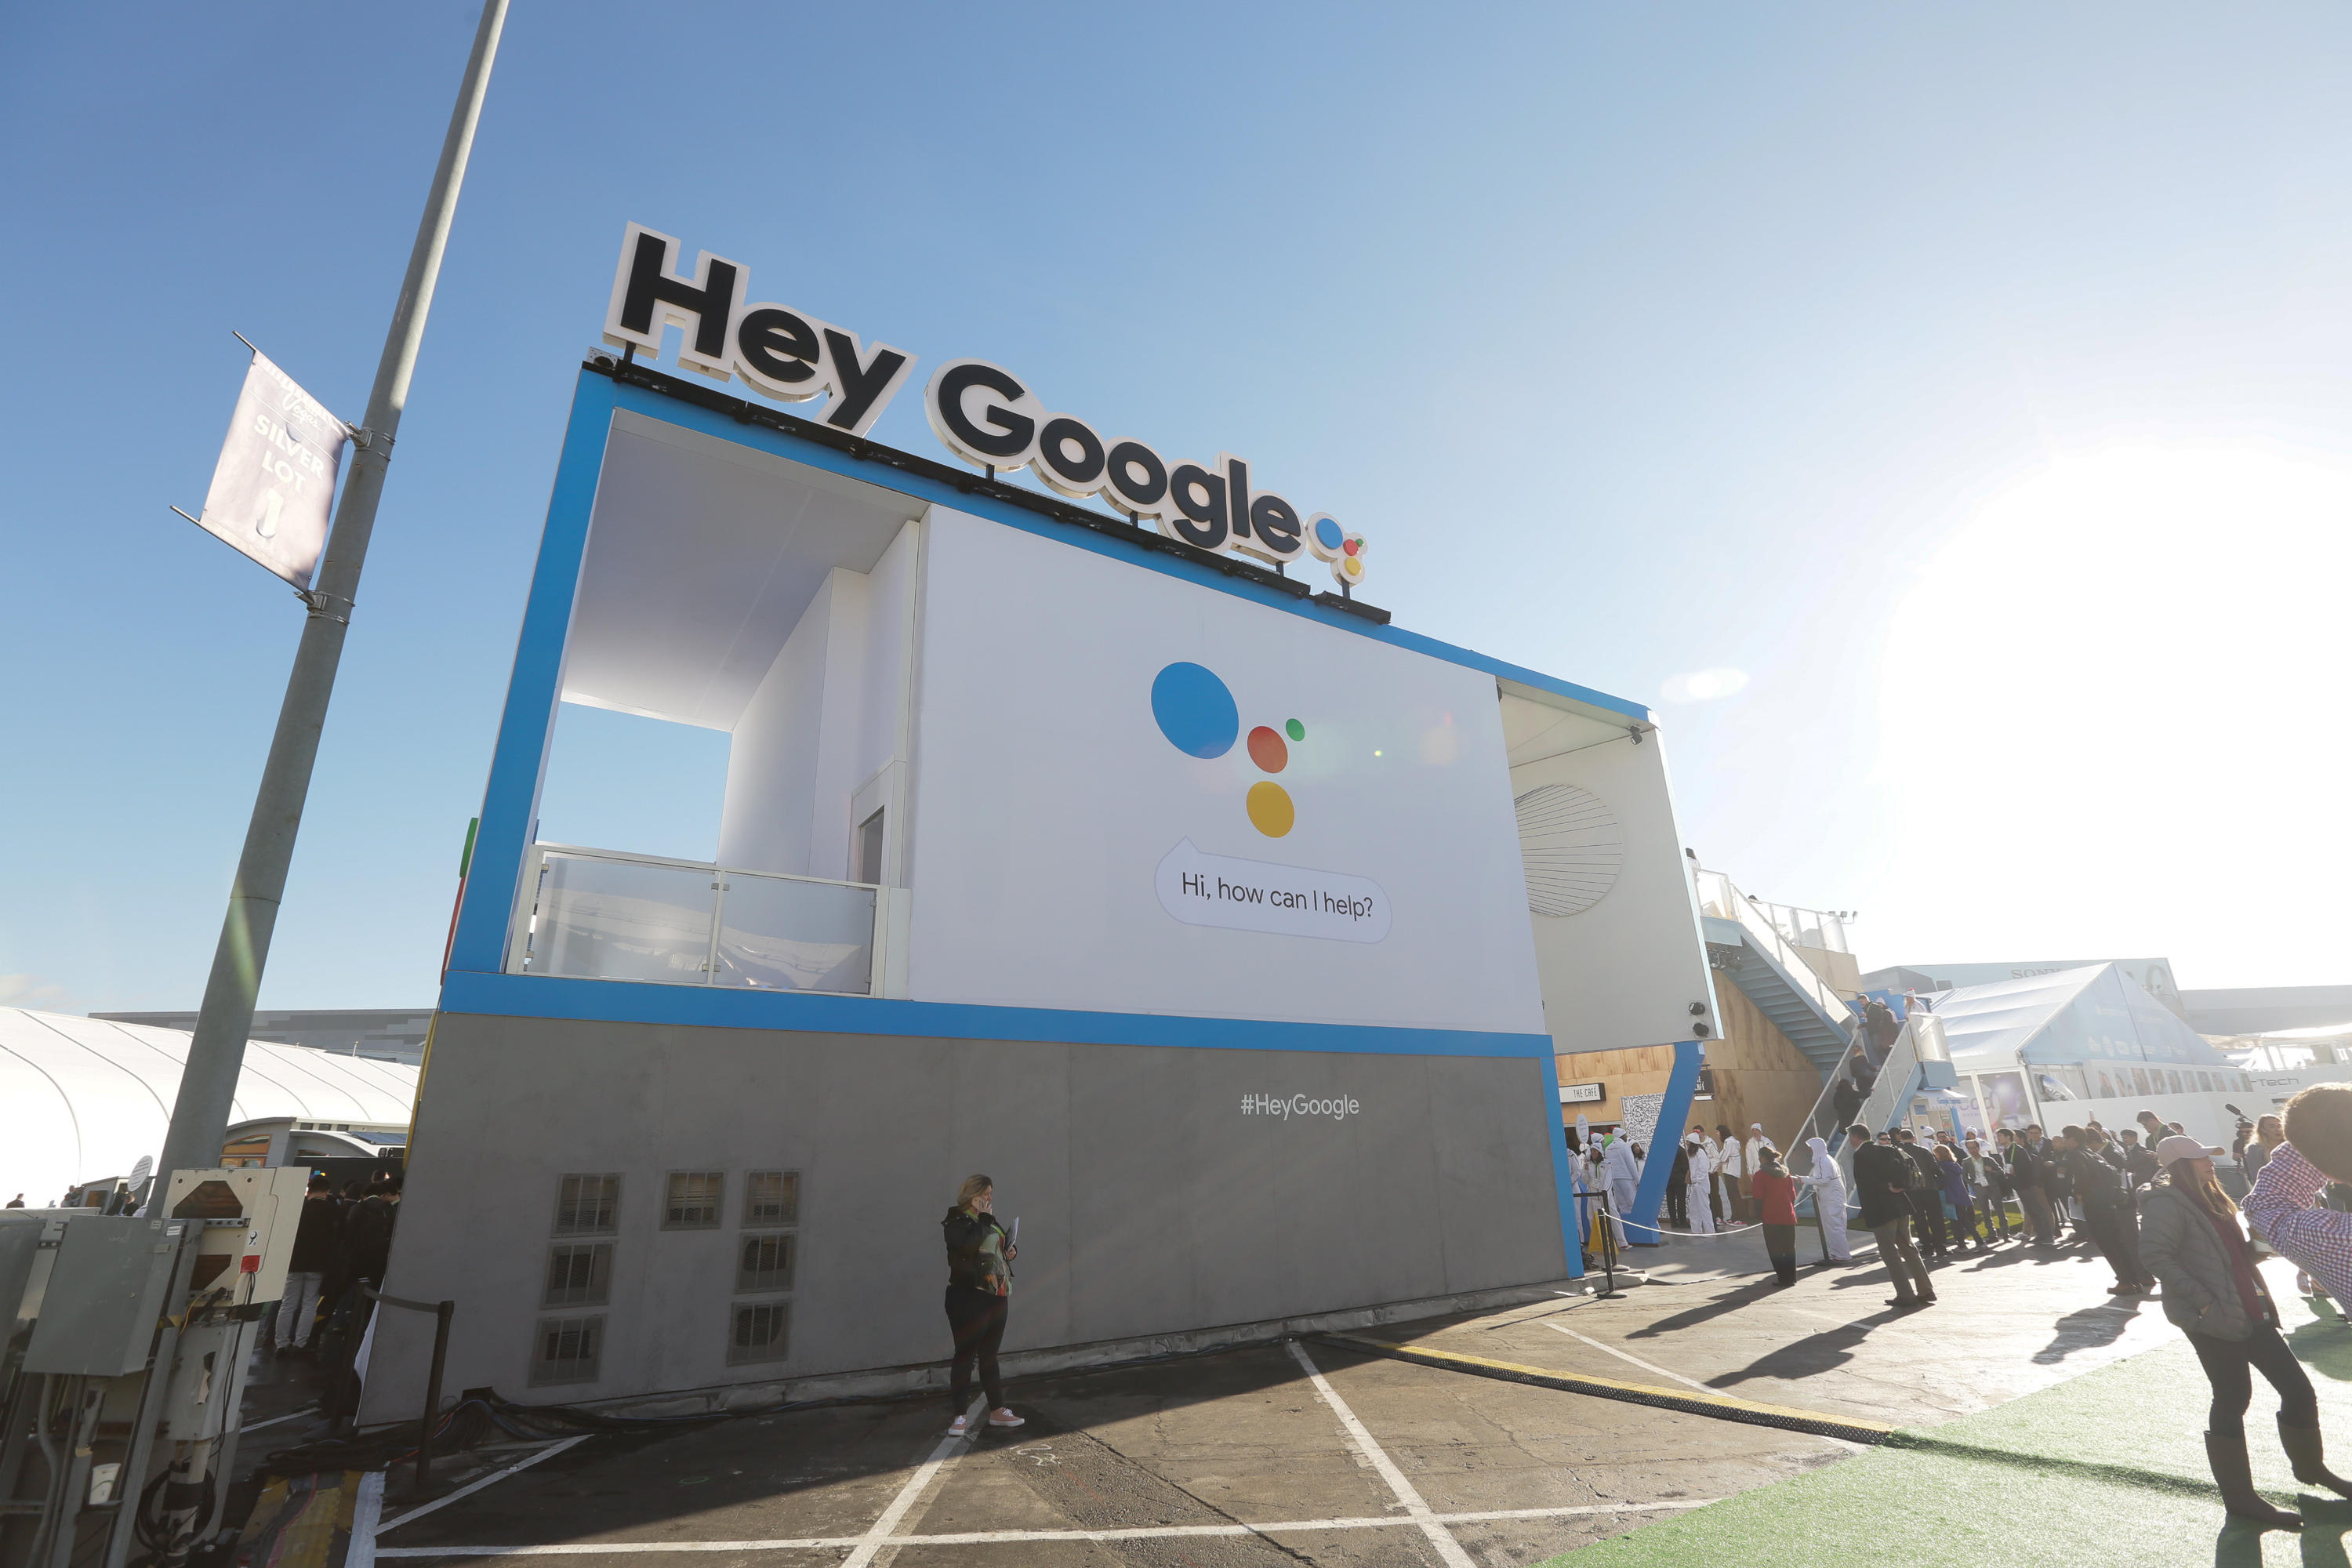 """Google CES 2018 booth with """"Hey Google"""" sign"""